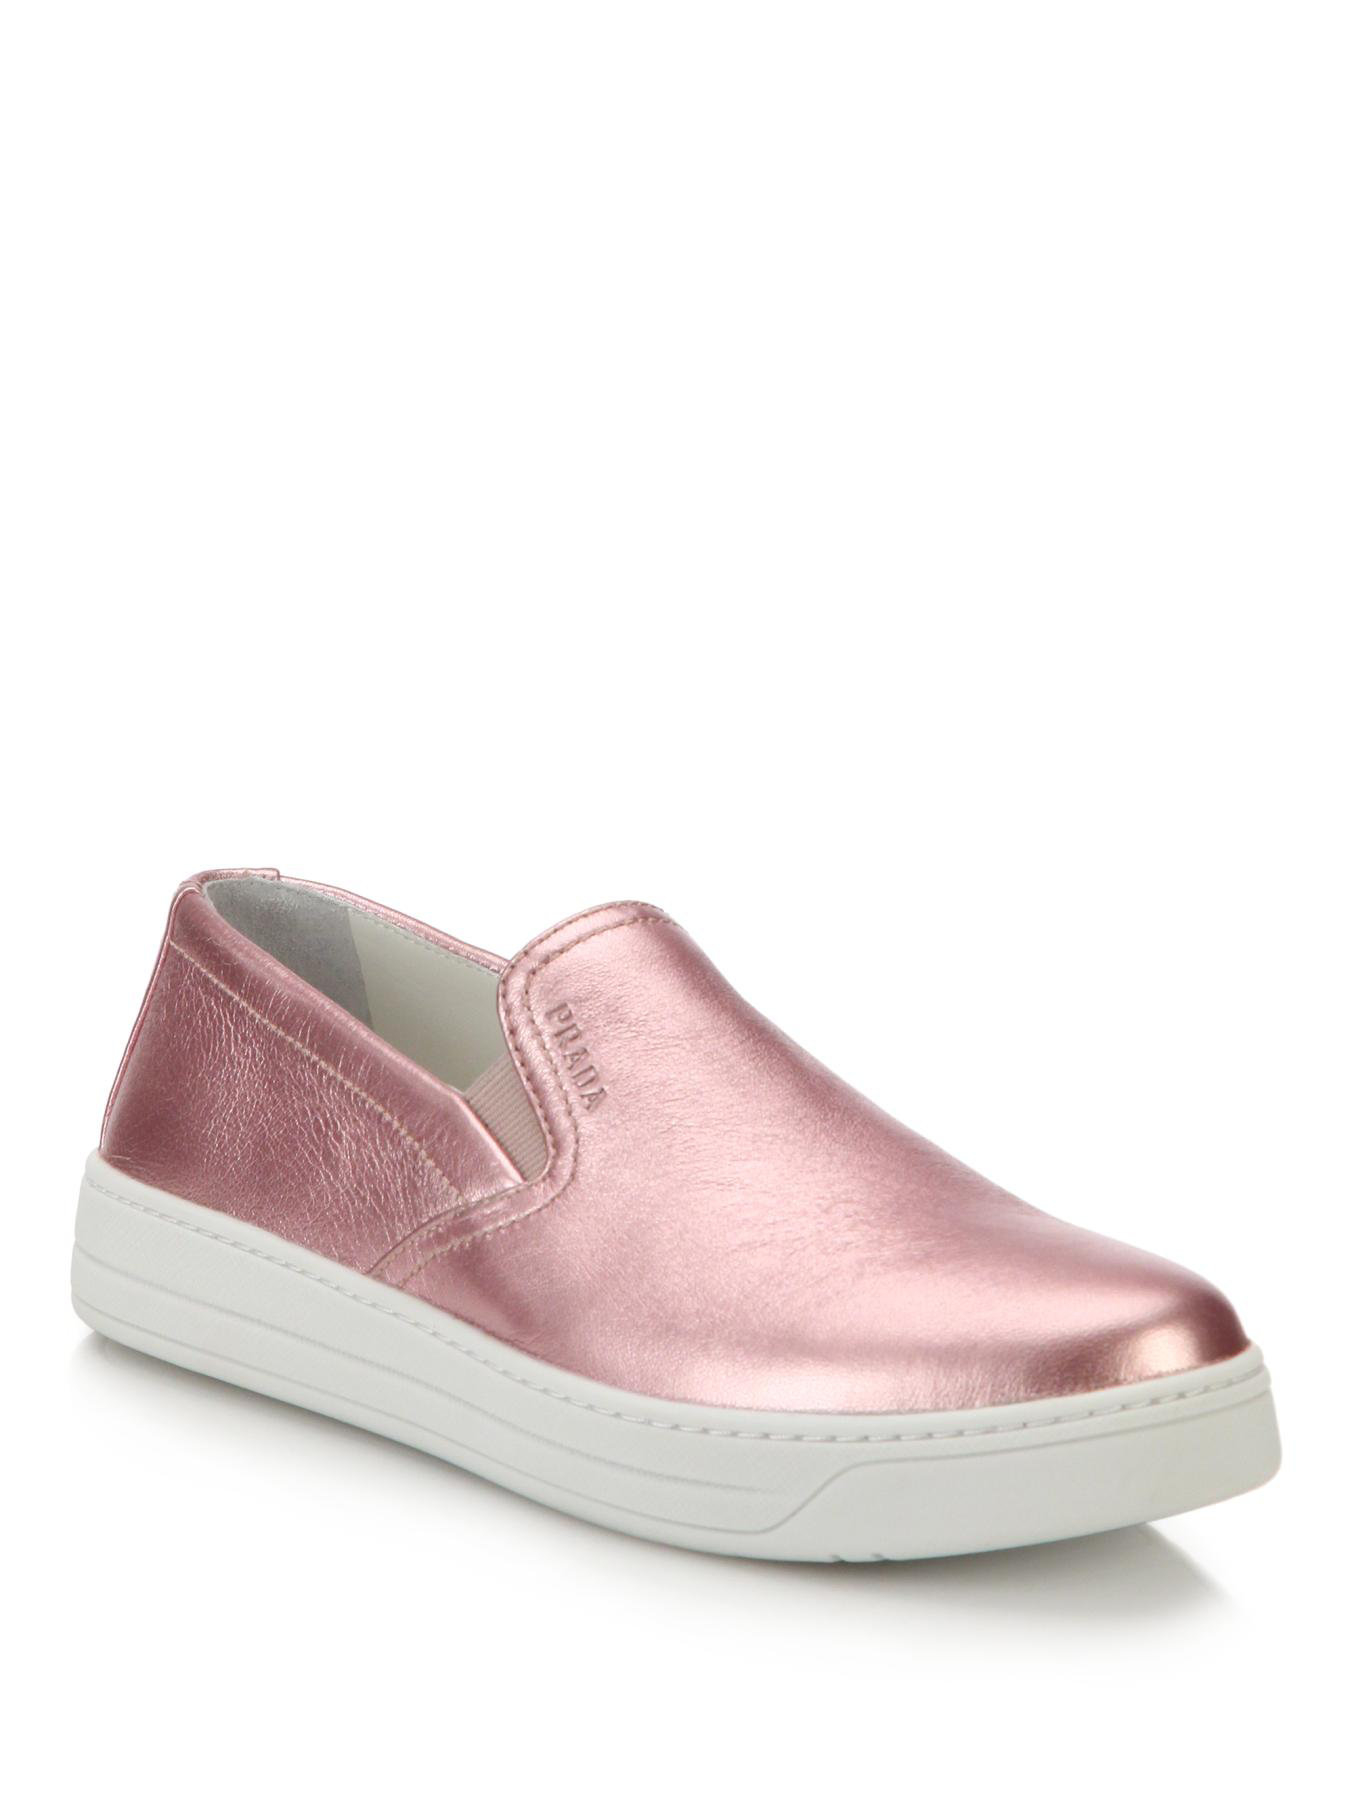 prada black bag price - Prada Metallic Leather Skate Shoes in Pink | Lyst